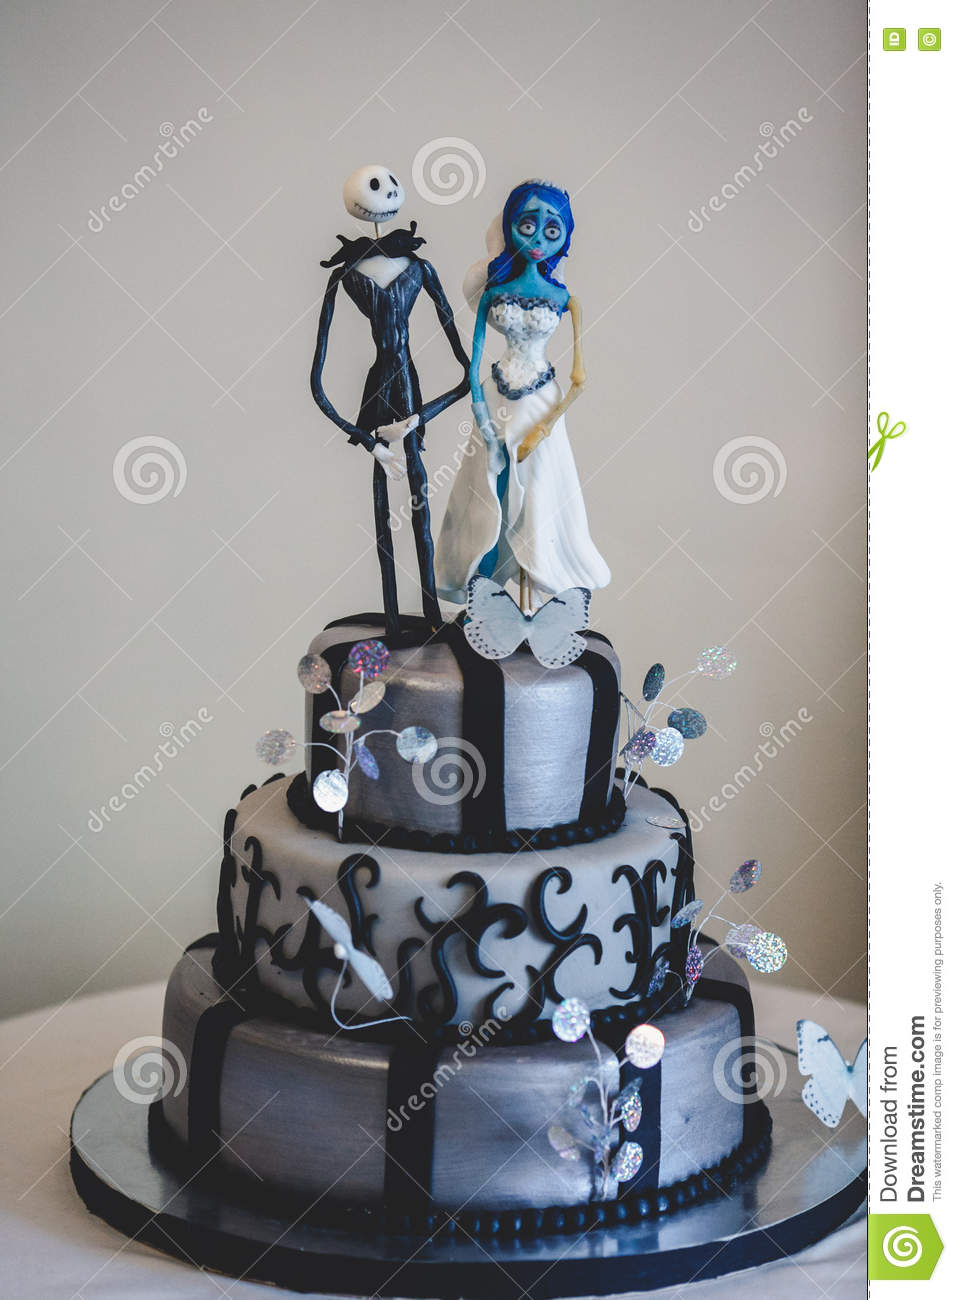 Black Gothic Wedding Cake Decorated With Figures Of